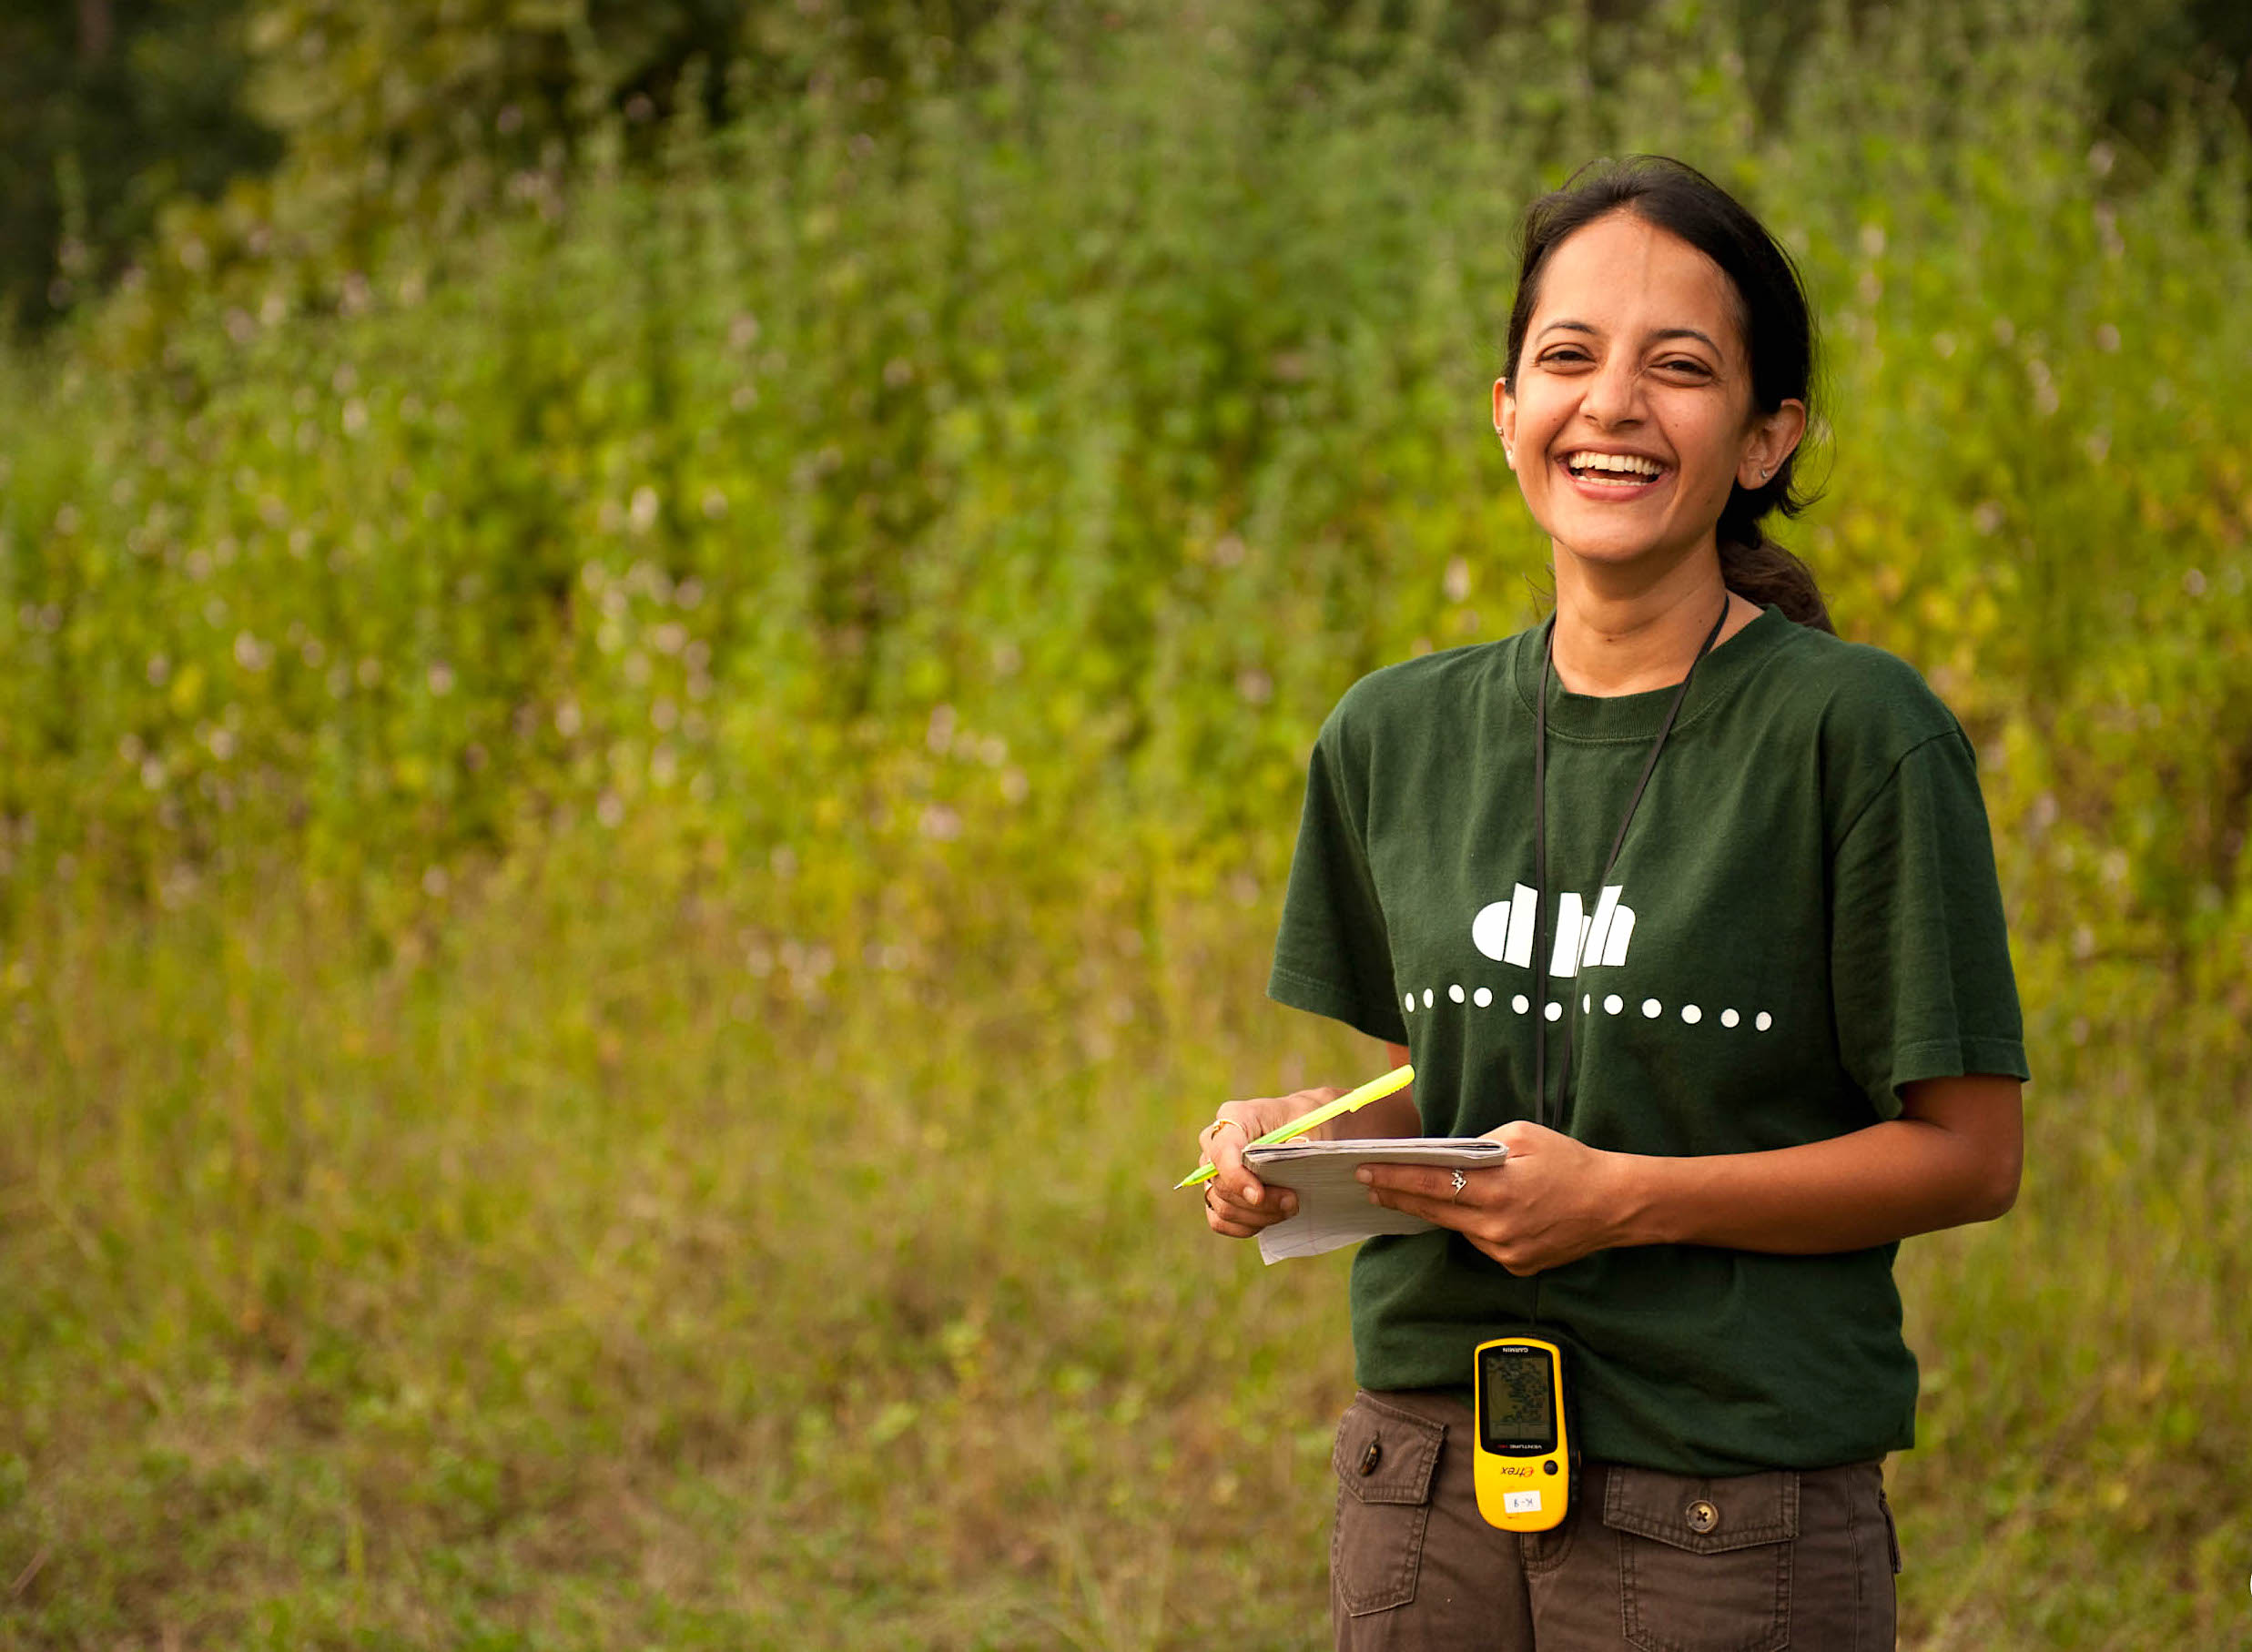 Krithi Karanth has spent much of her life, especially in the last two decades, trudging through dense forests, grasslands, wildlife sanctuaries, and parks to collect data. Photo: Kalyan Varma